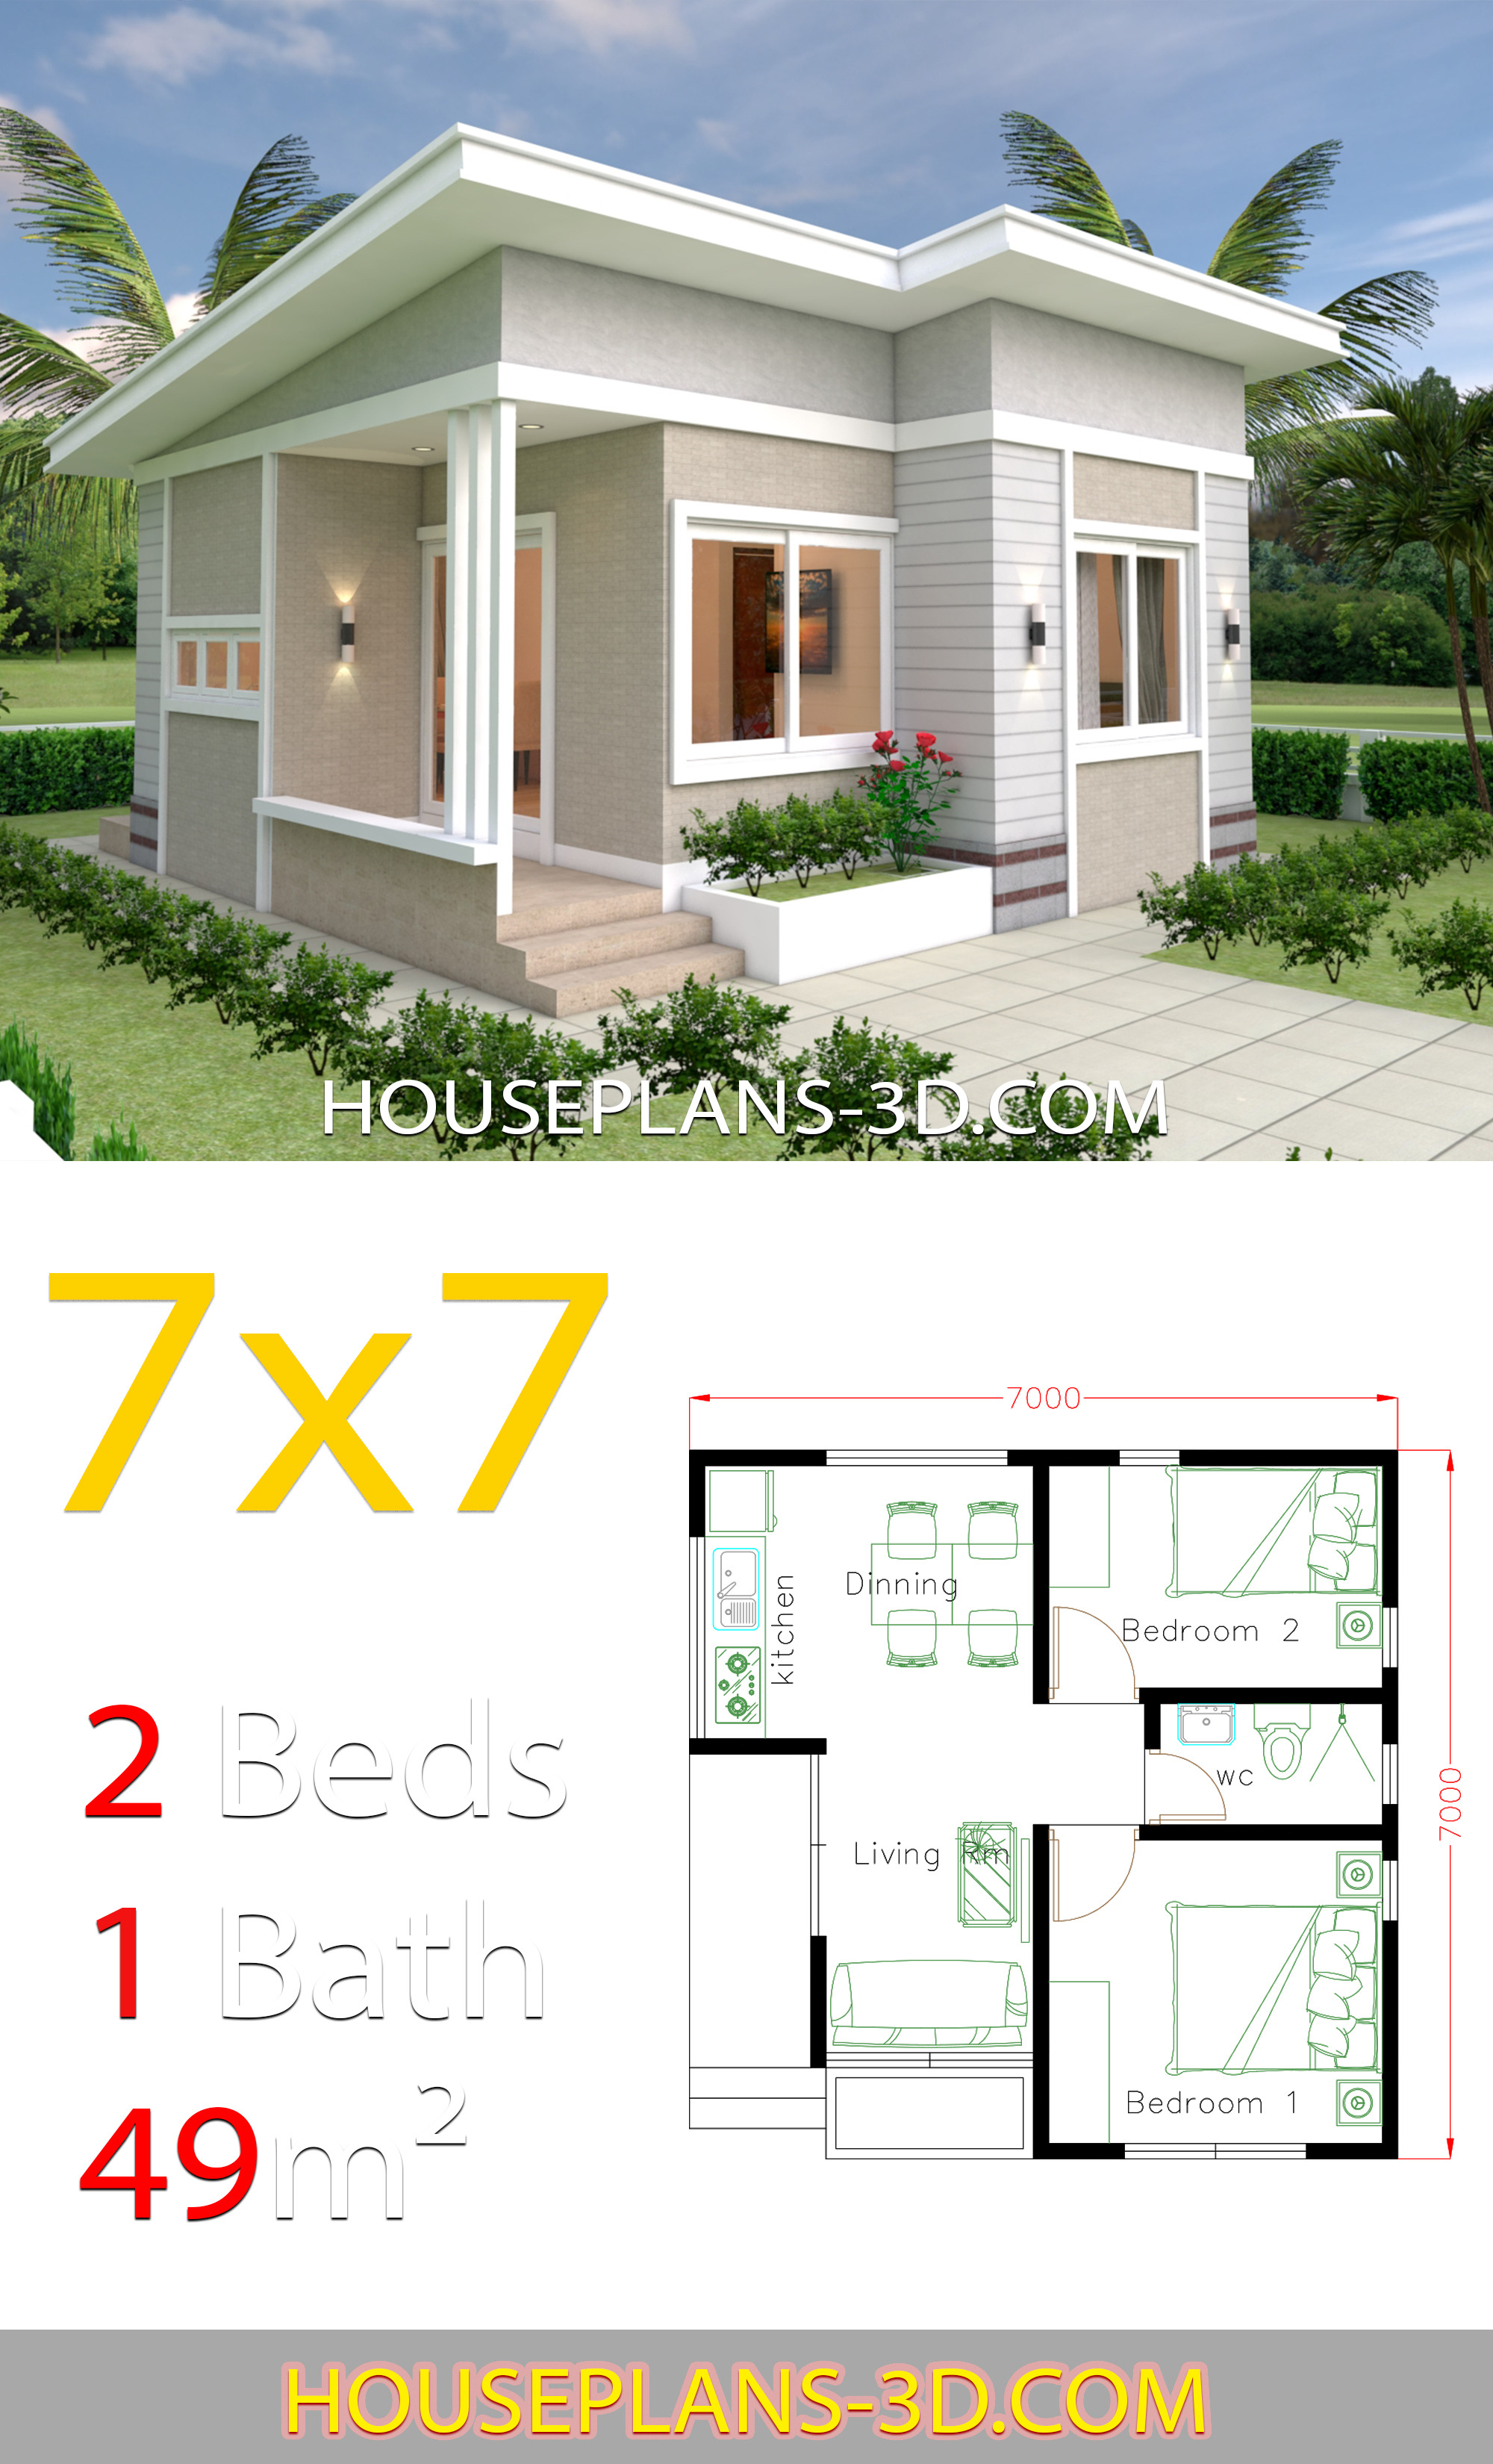 Small Home Design Photos Luxury Small House Design Plans 7x7 with 2 Bedrooms